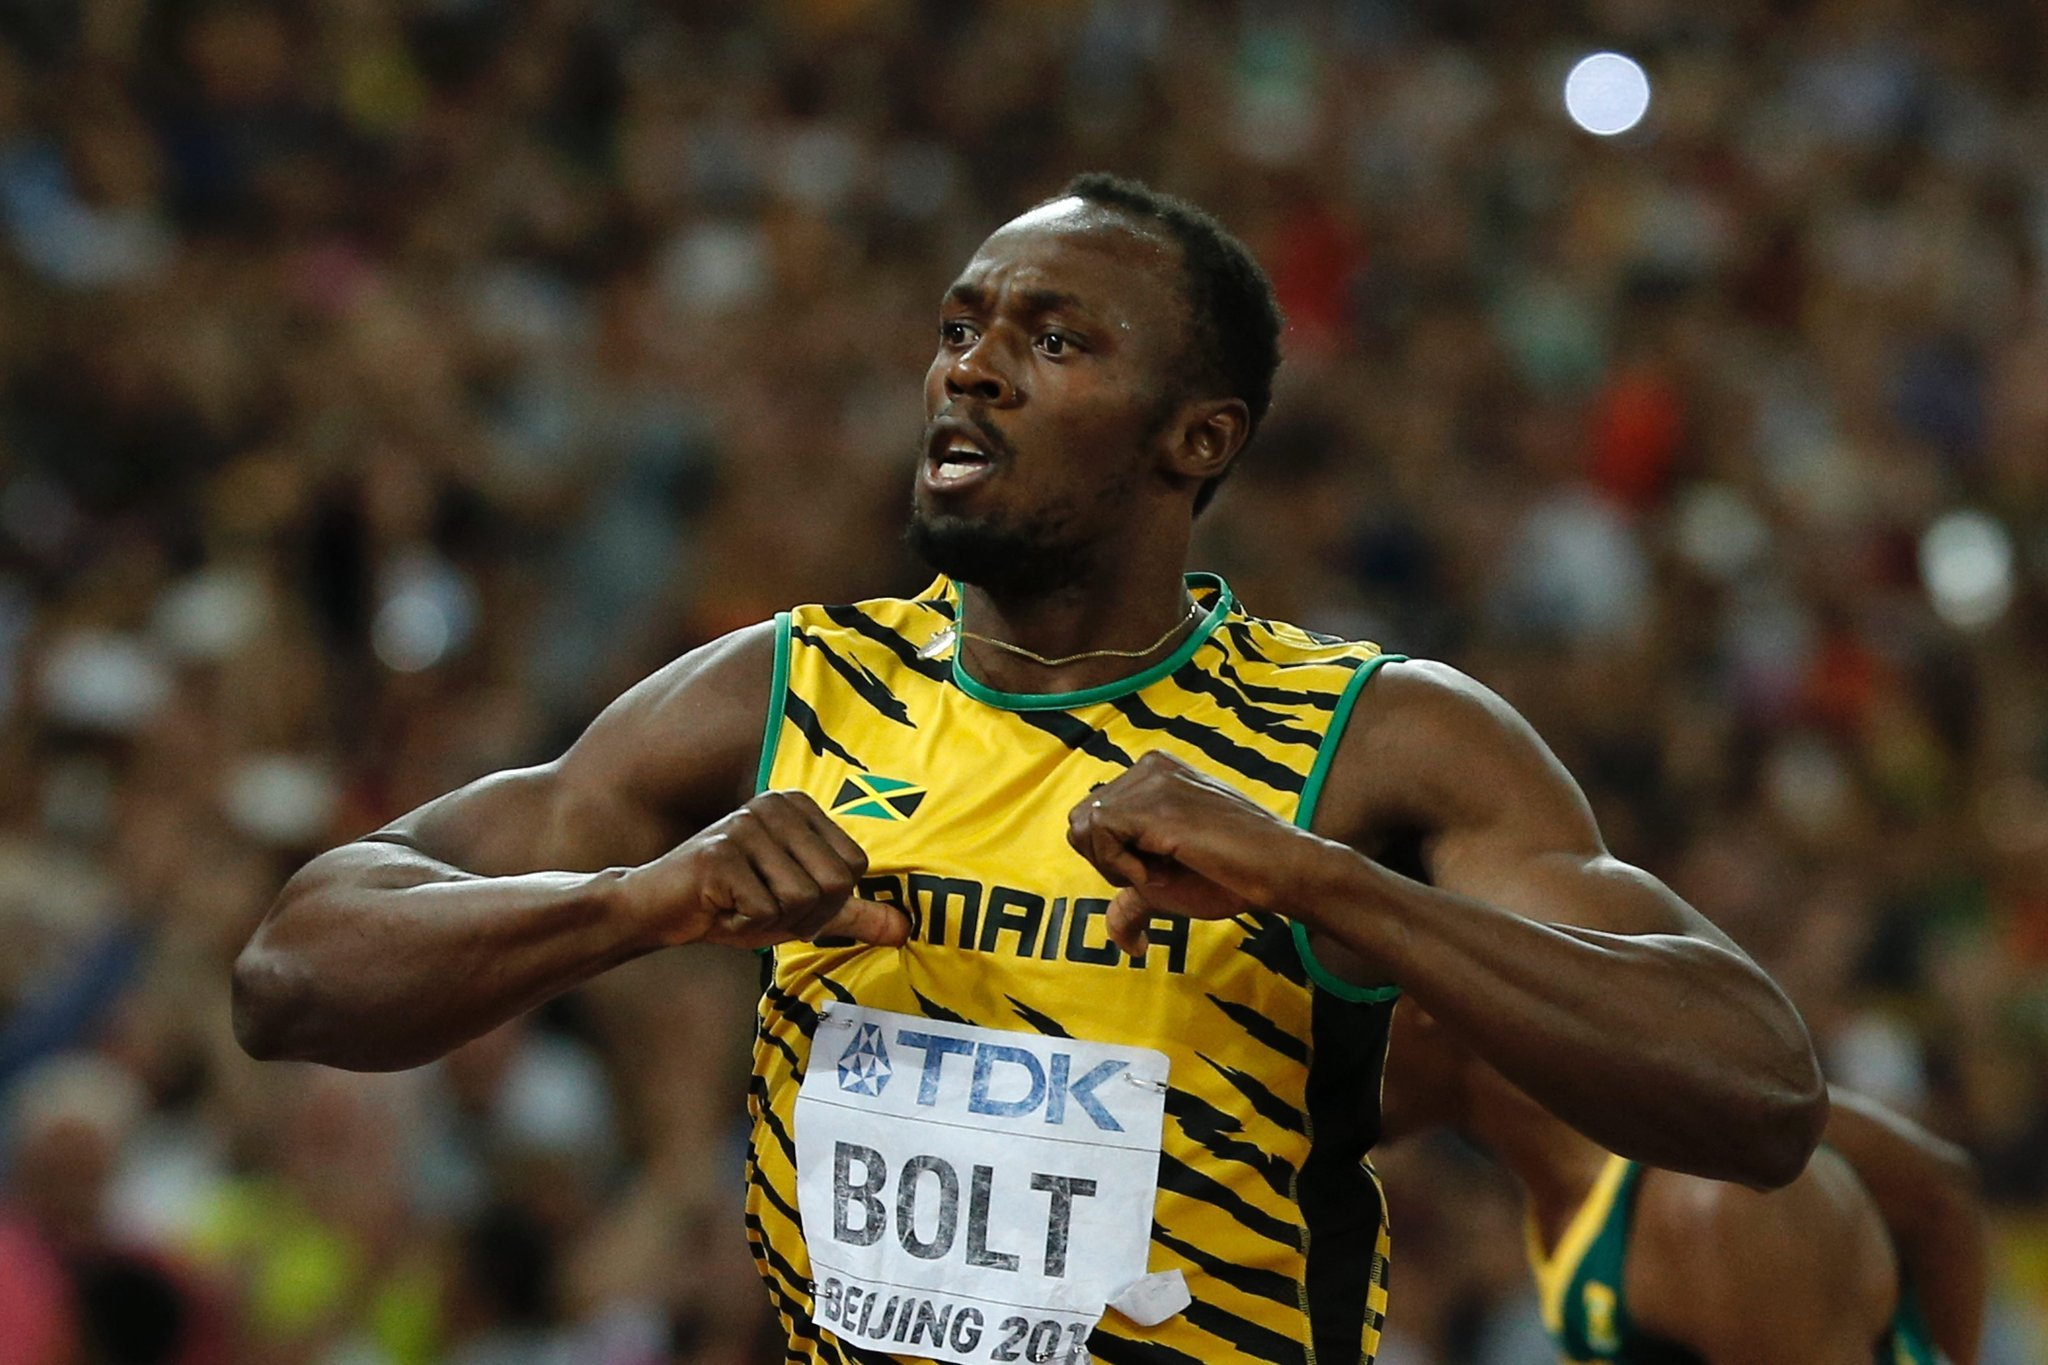 Usain Bolt will take nostalgic route to Summer Olympics